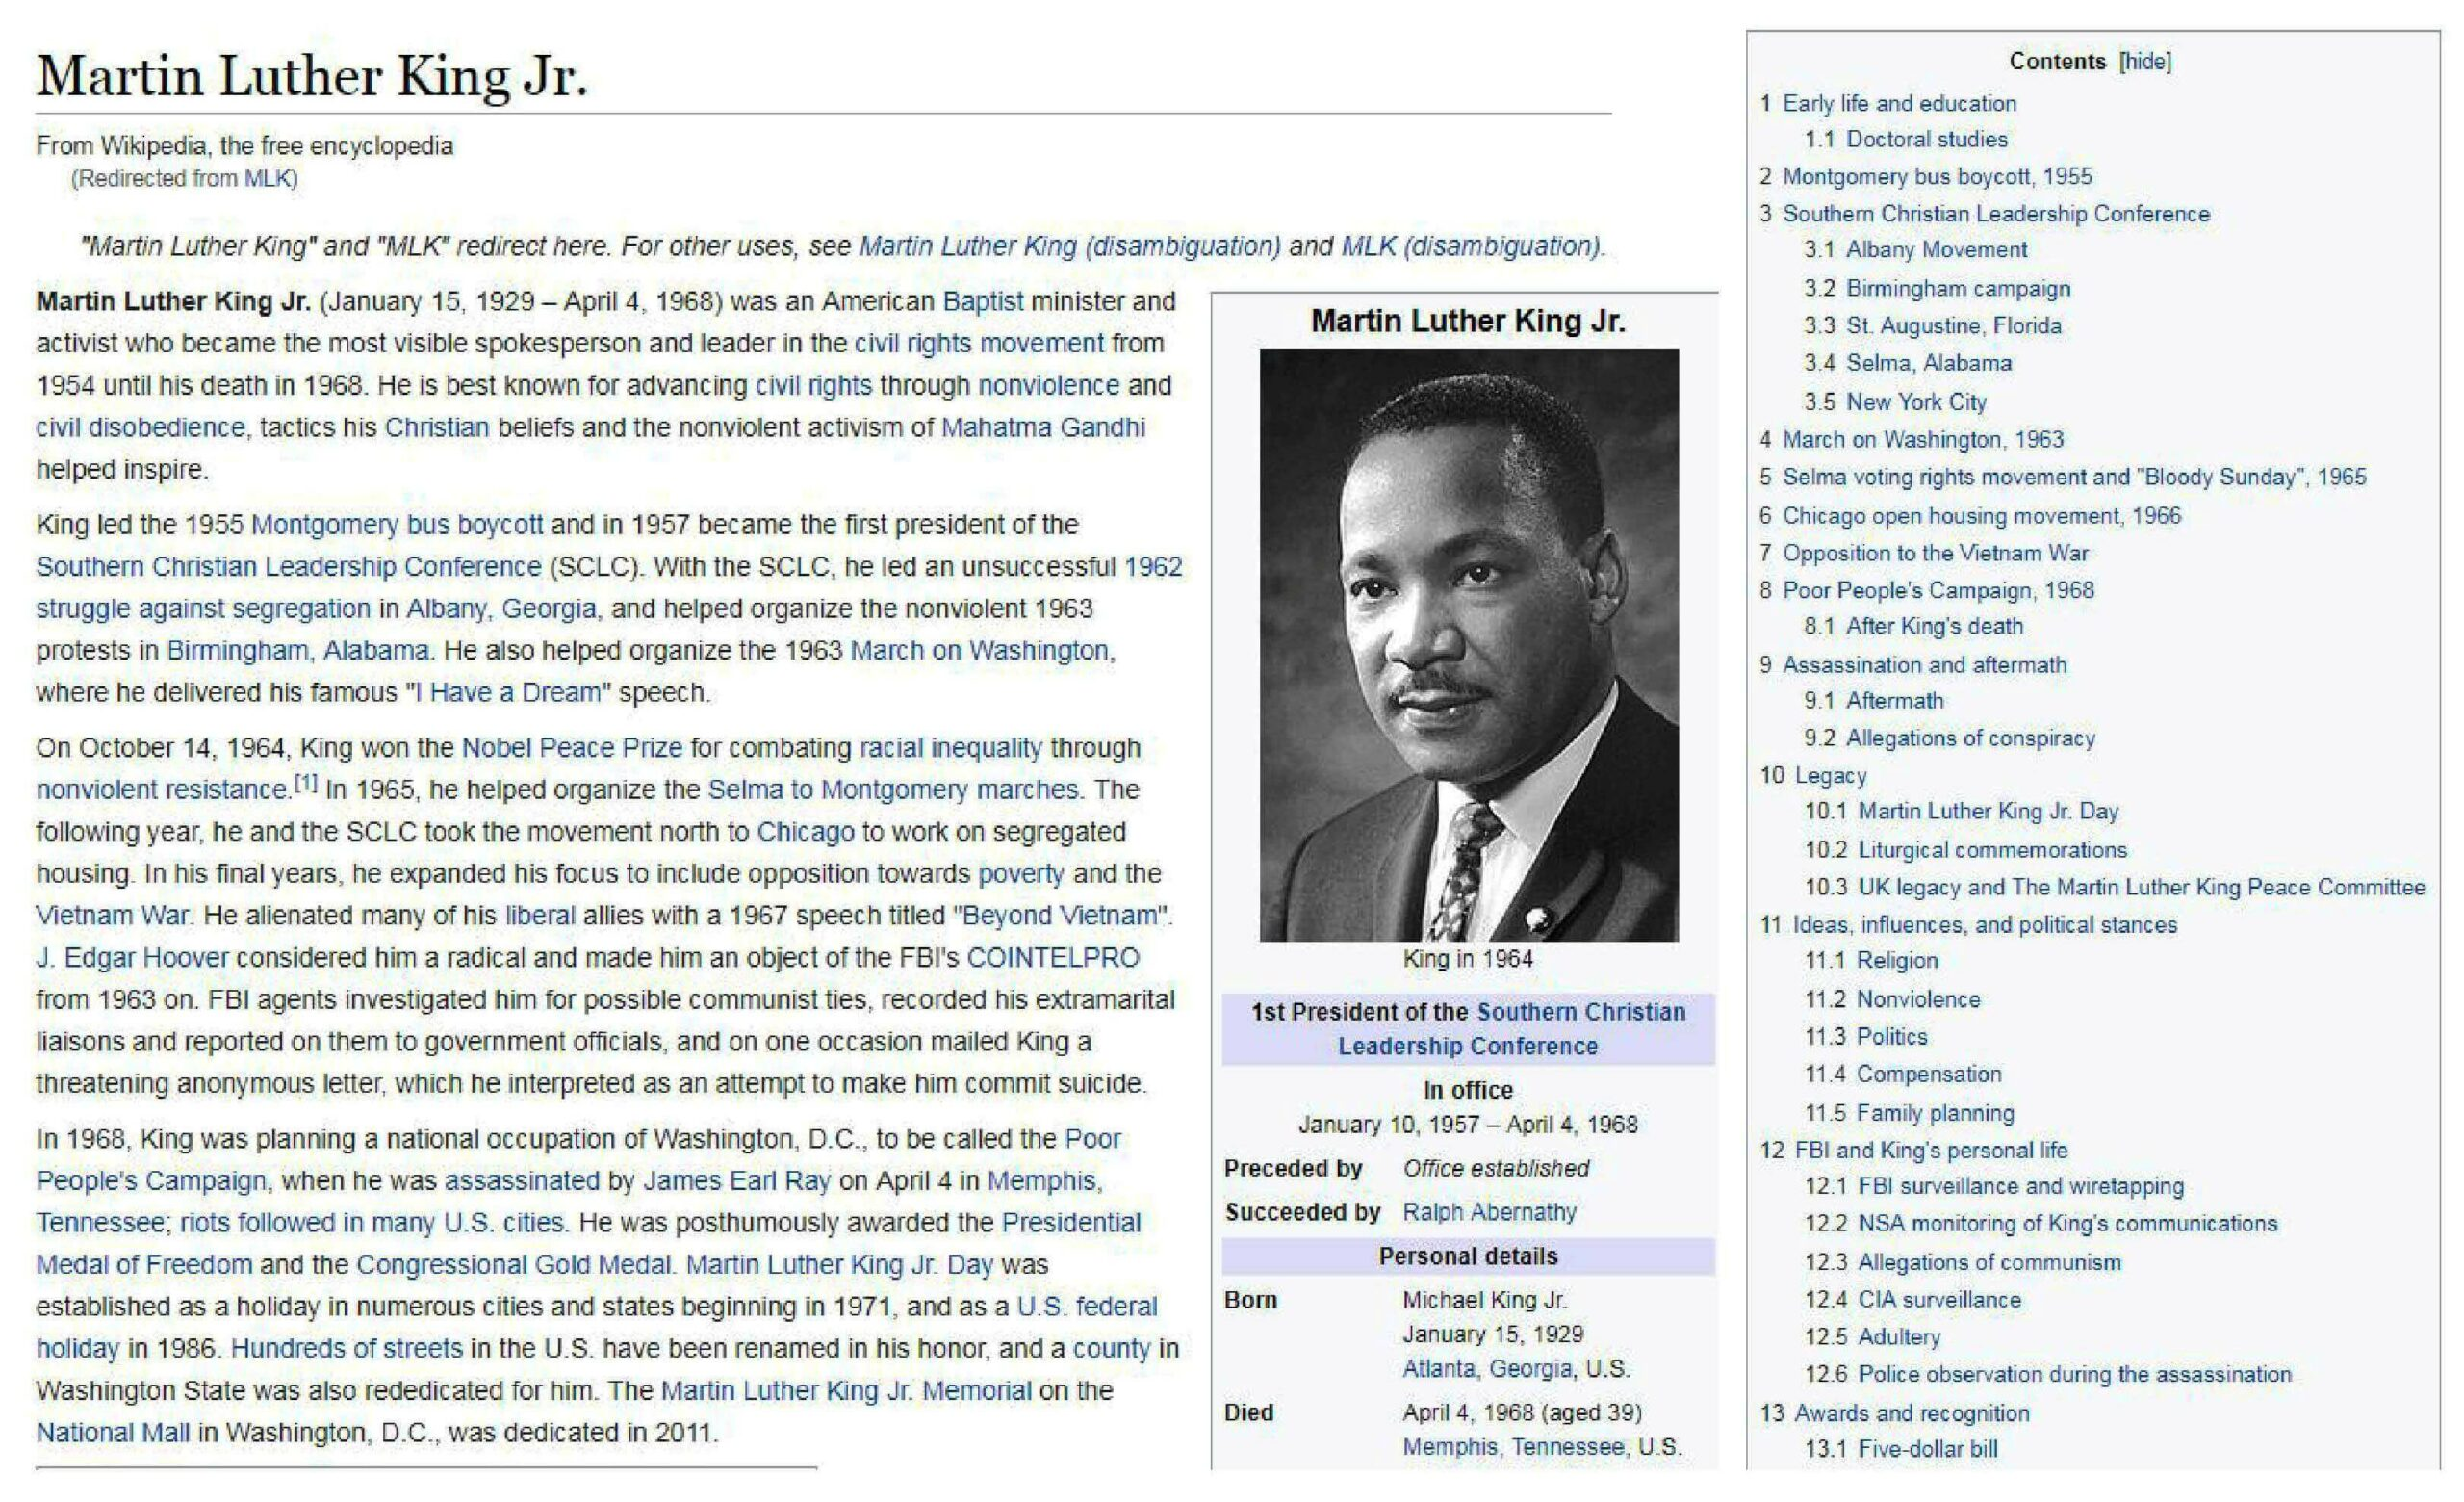 Wikipedia Martin Luther King, Jr. Article